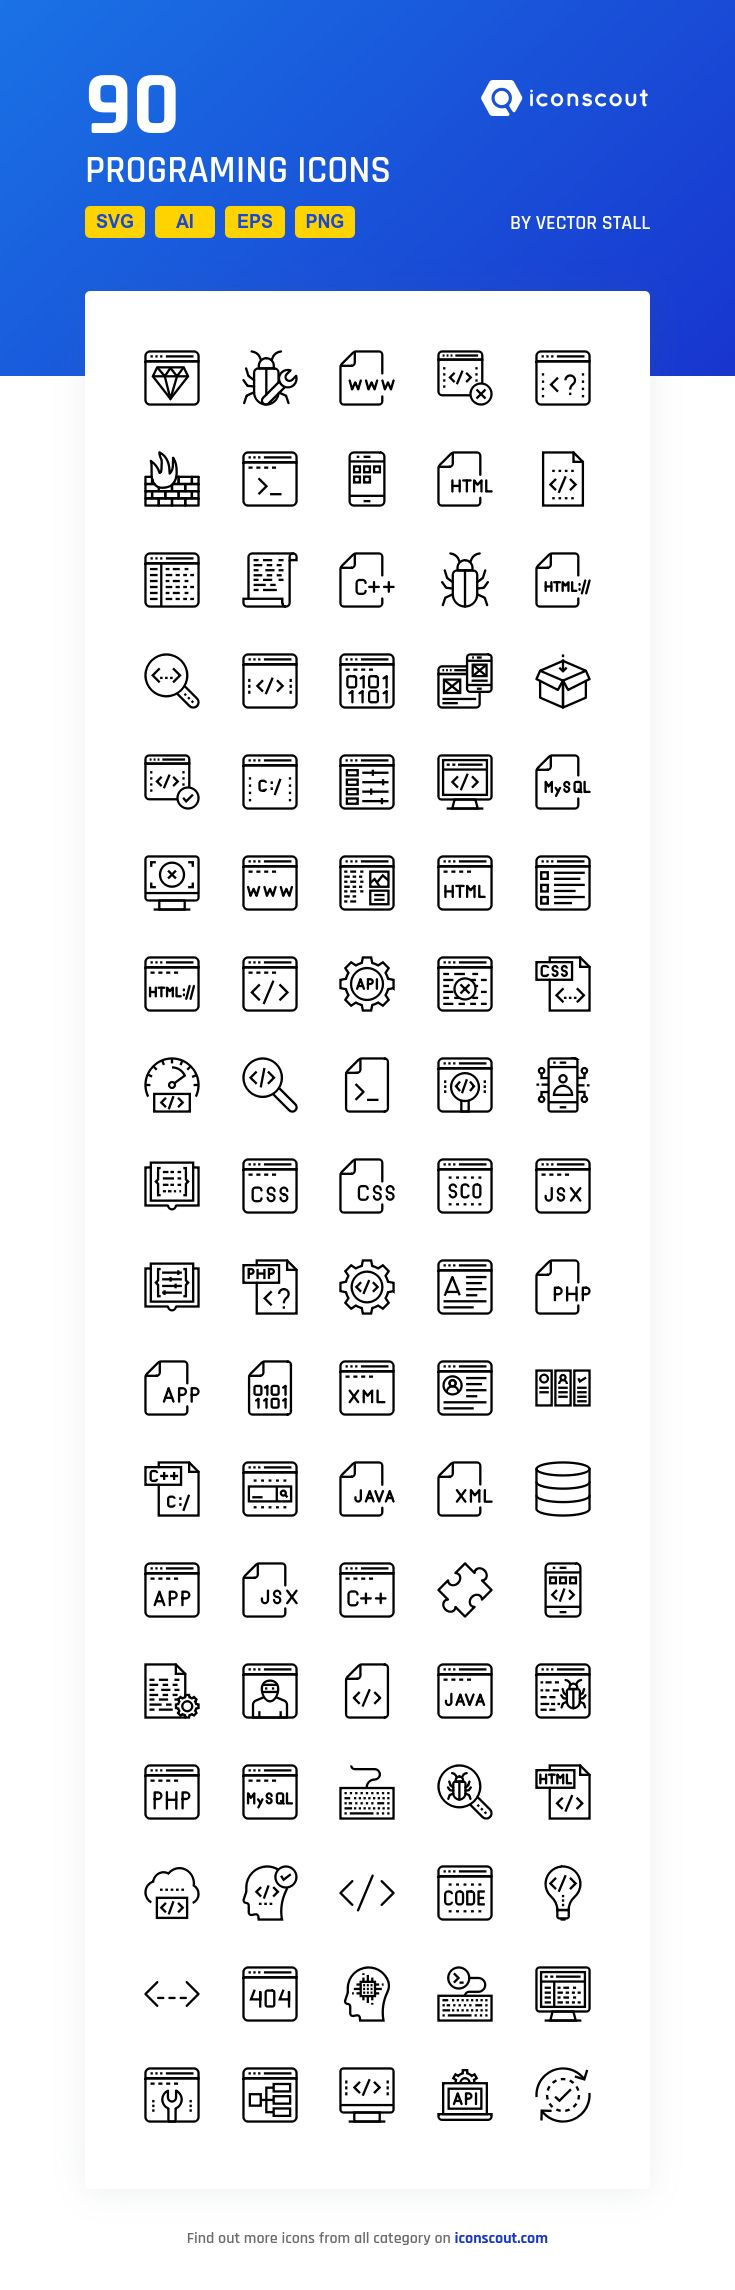 Programing  Icon Pack - 90 Line Icons